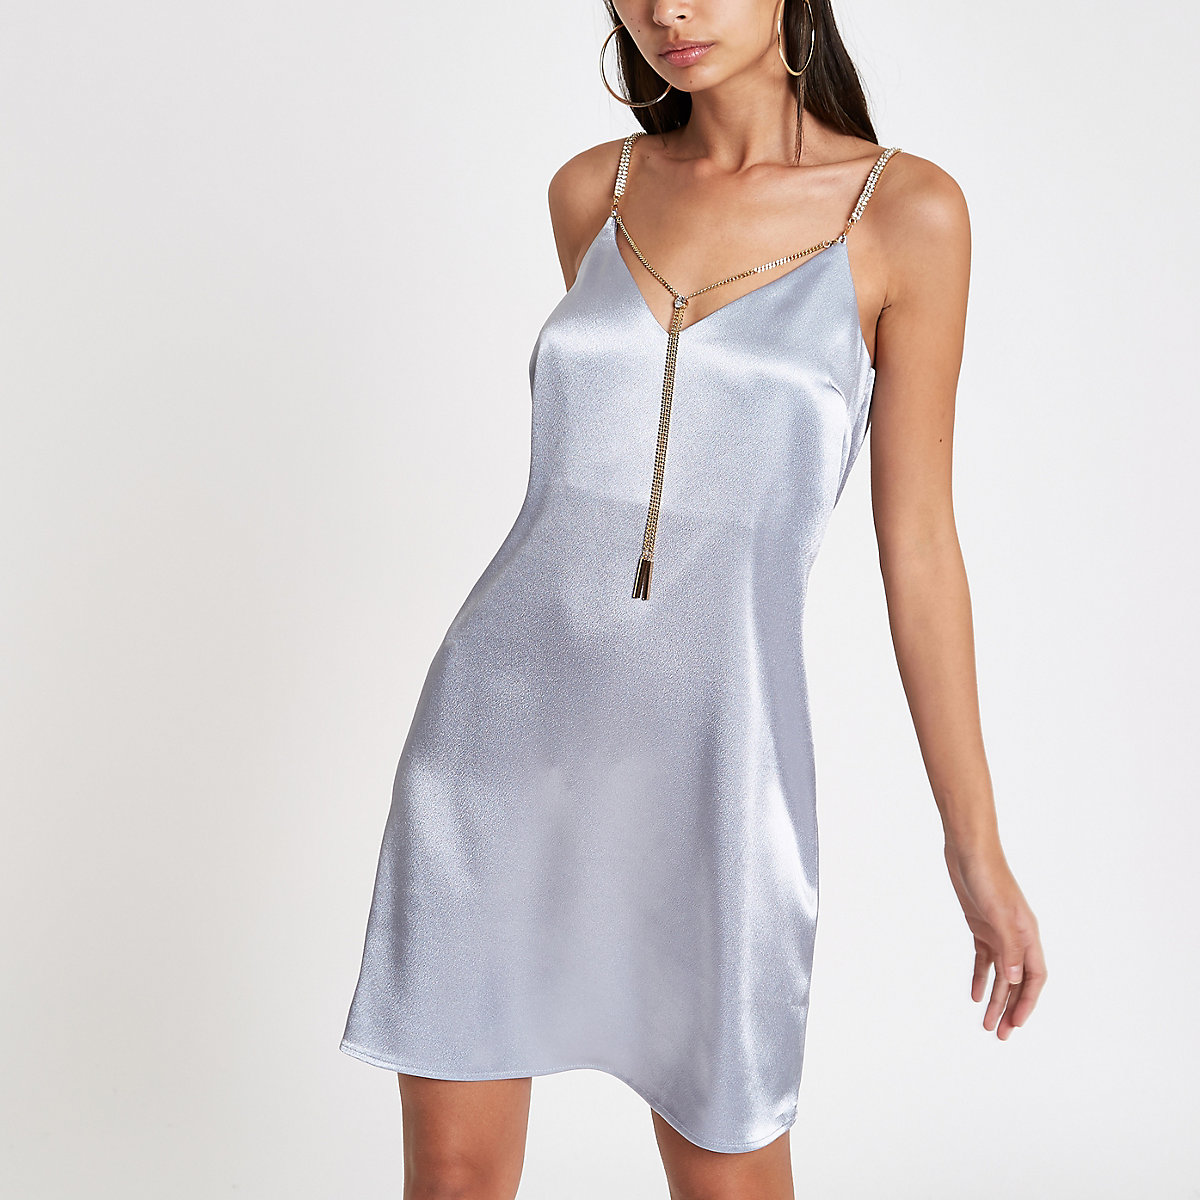 Blue satin chain strap slip dress